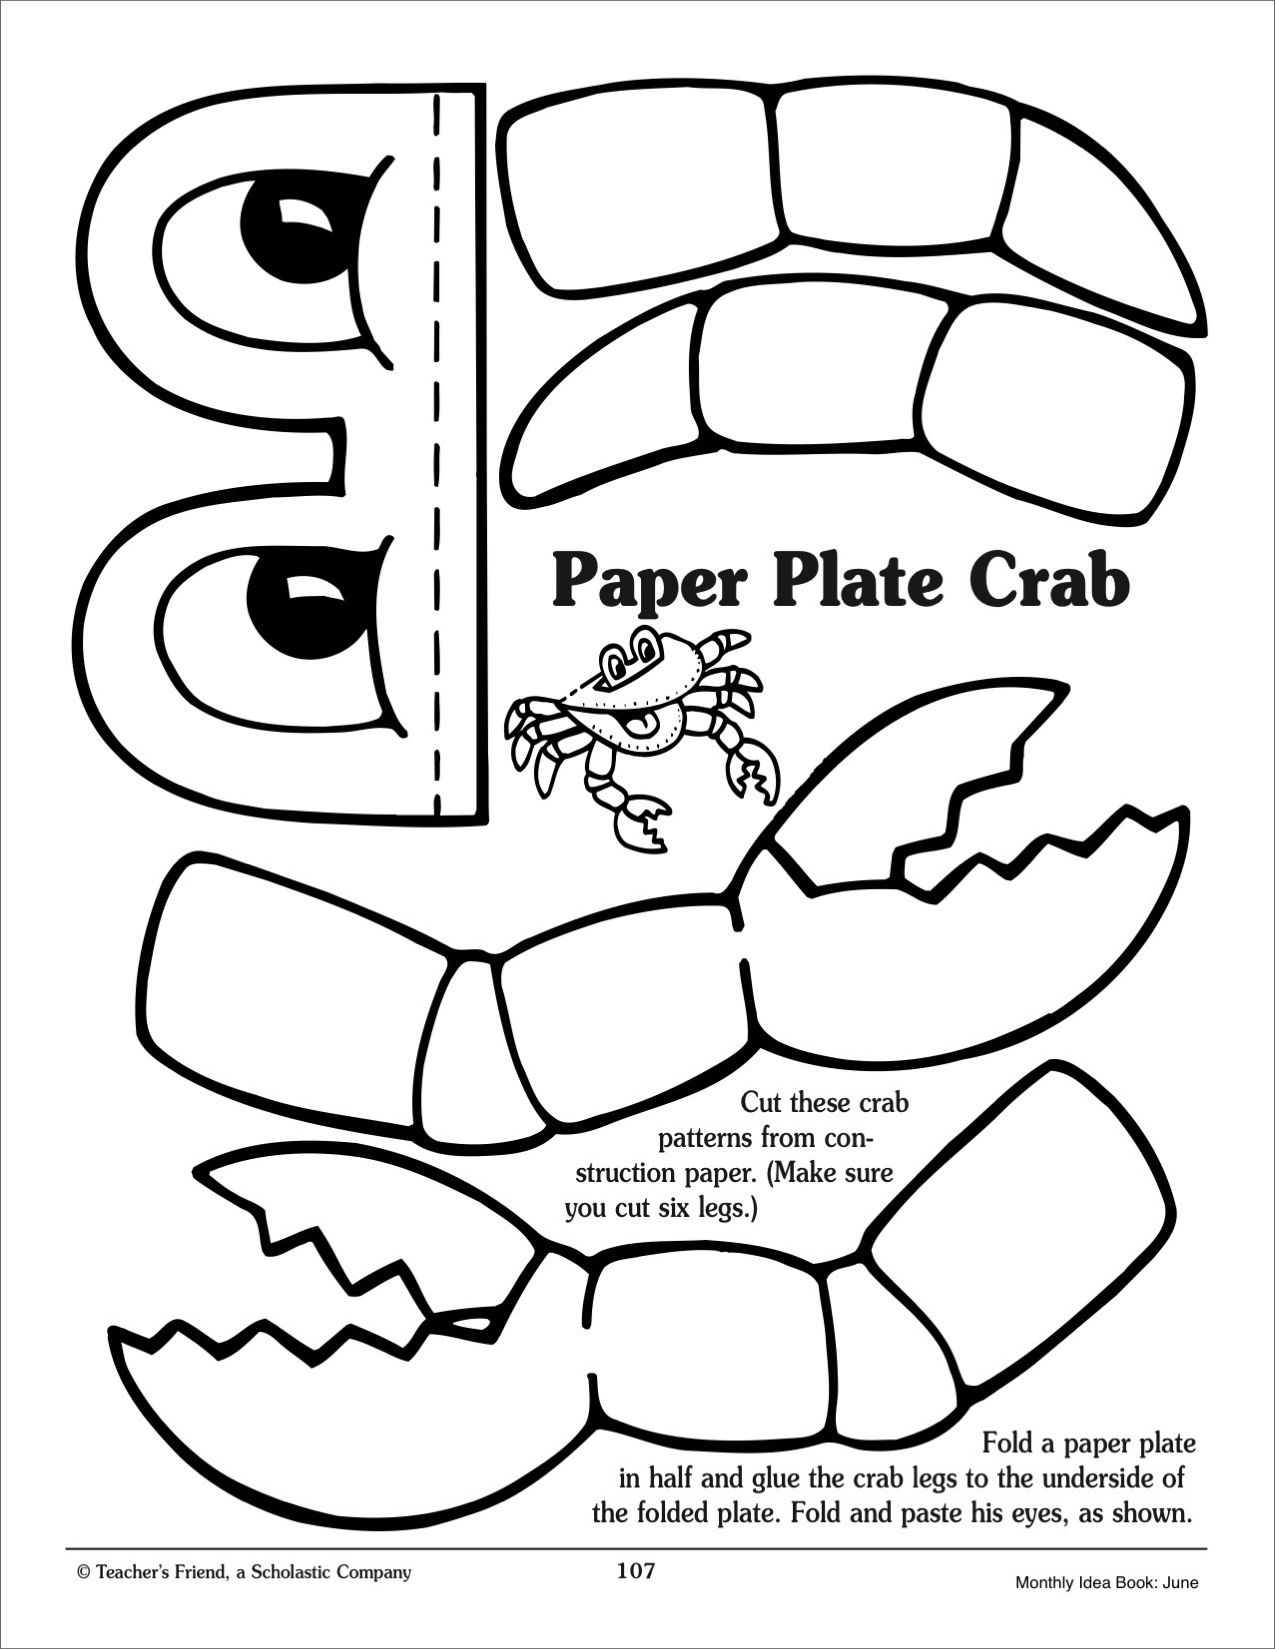 photograph relating to Crab Stencil Printable identify Crab Template Pictures - Opposite Glimpse